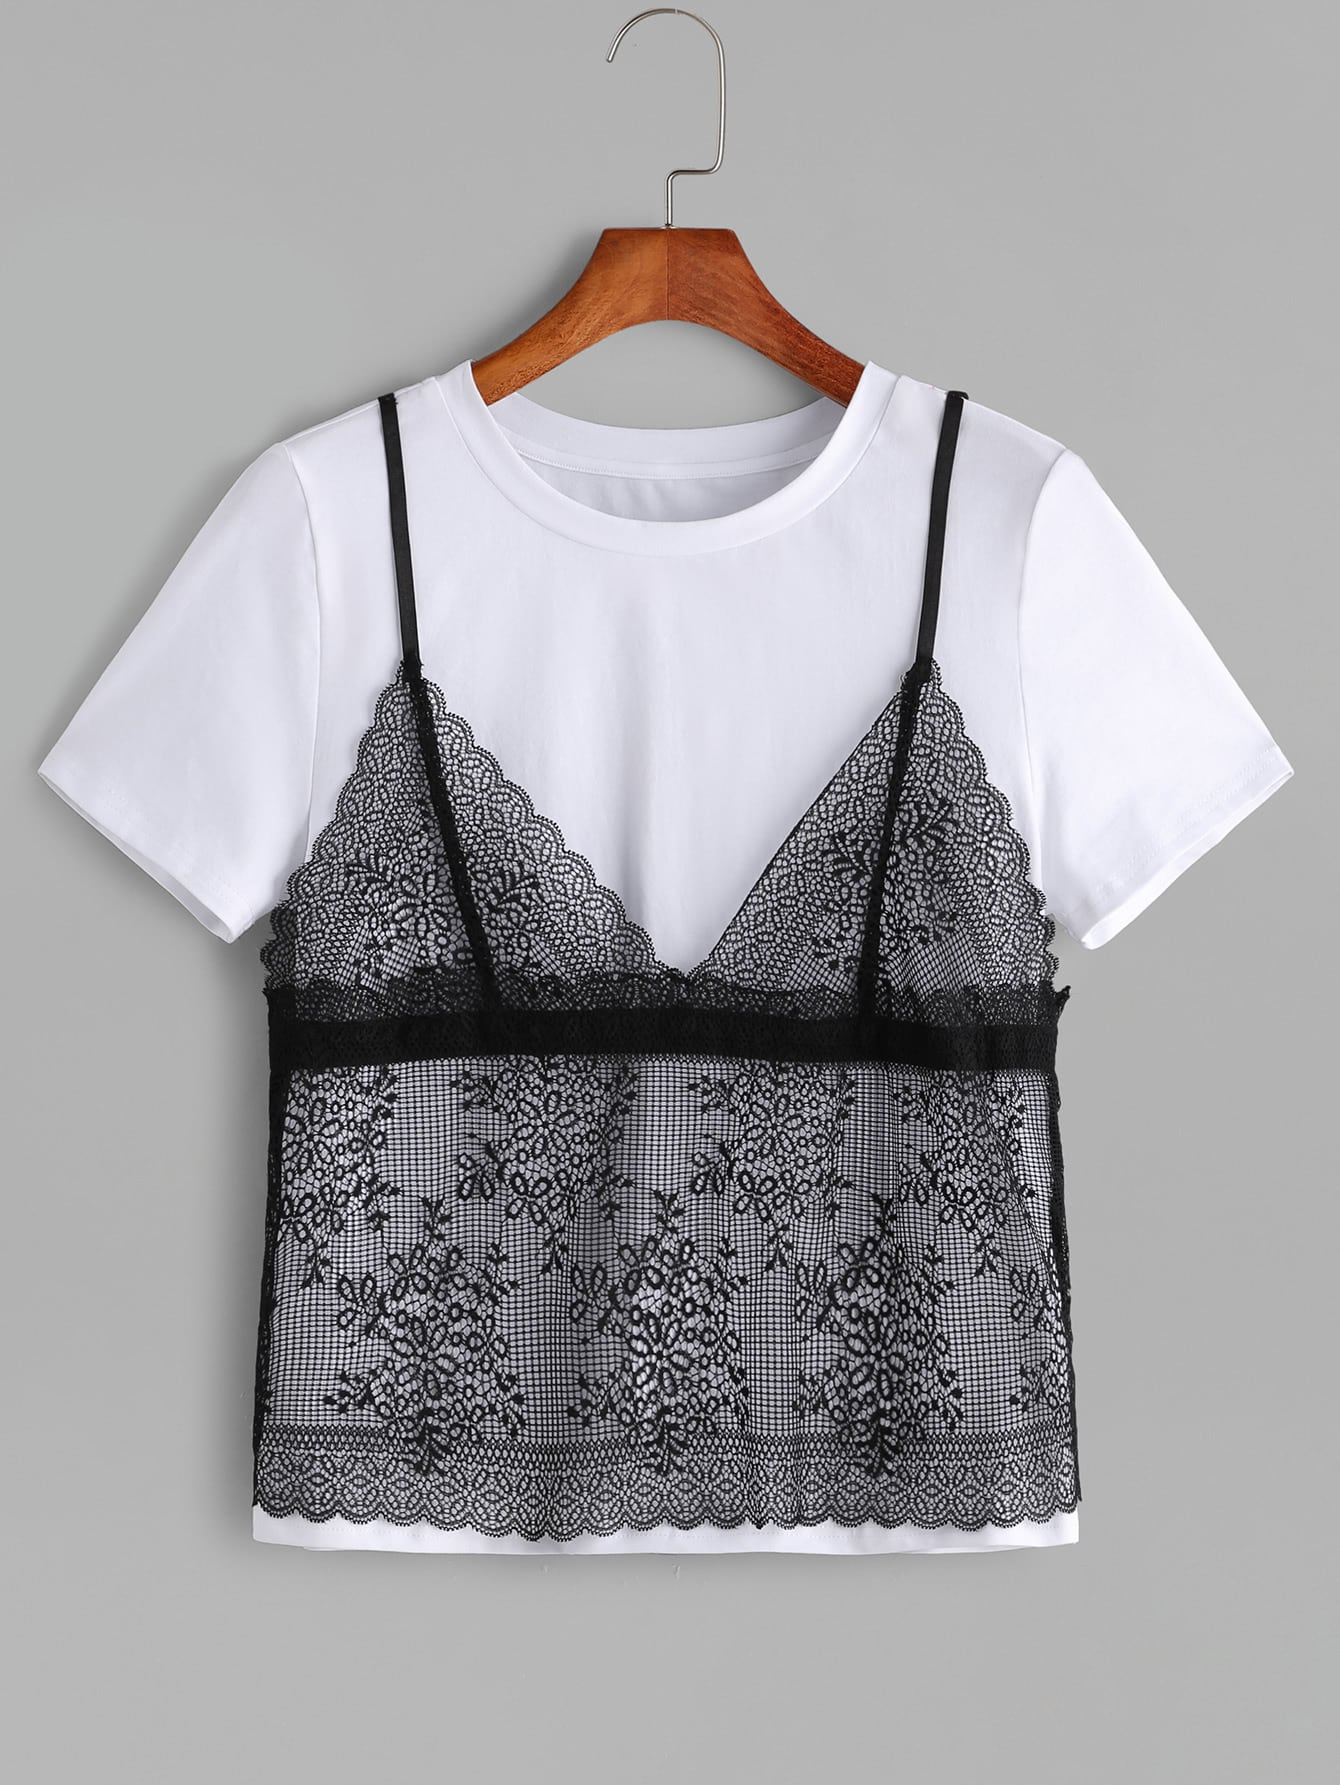 Contrast Floral Lace Cami Overlay T-shirt floral lace overlay top